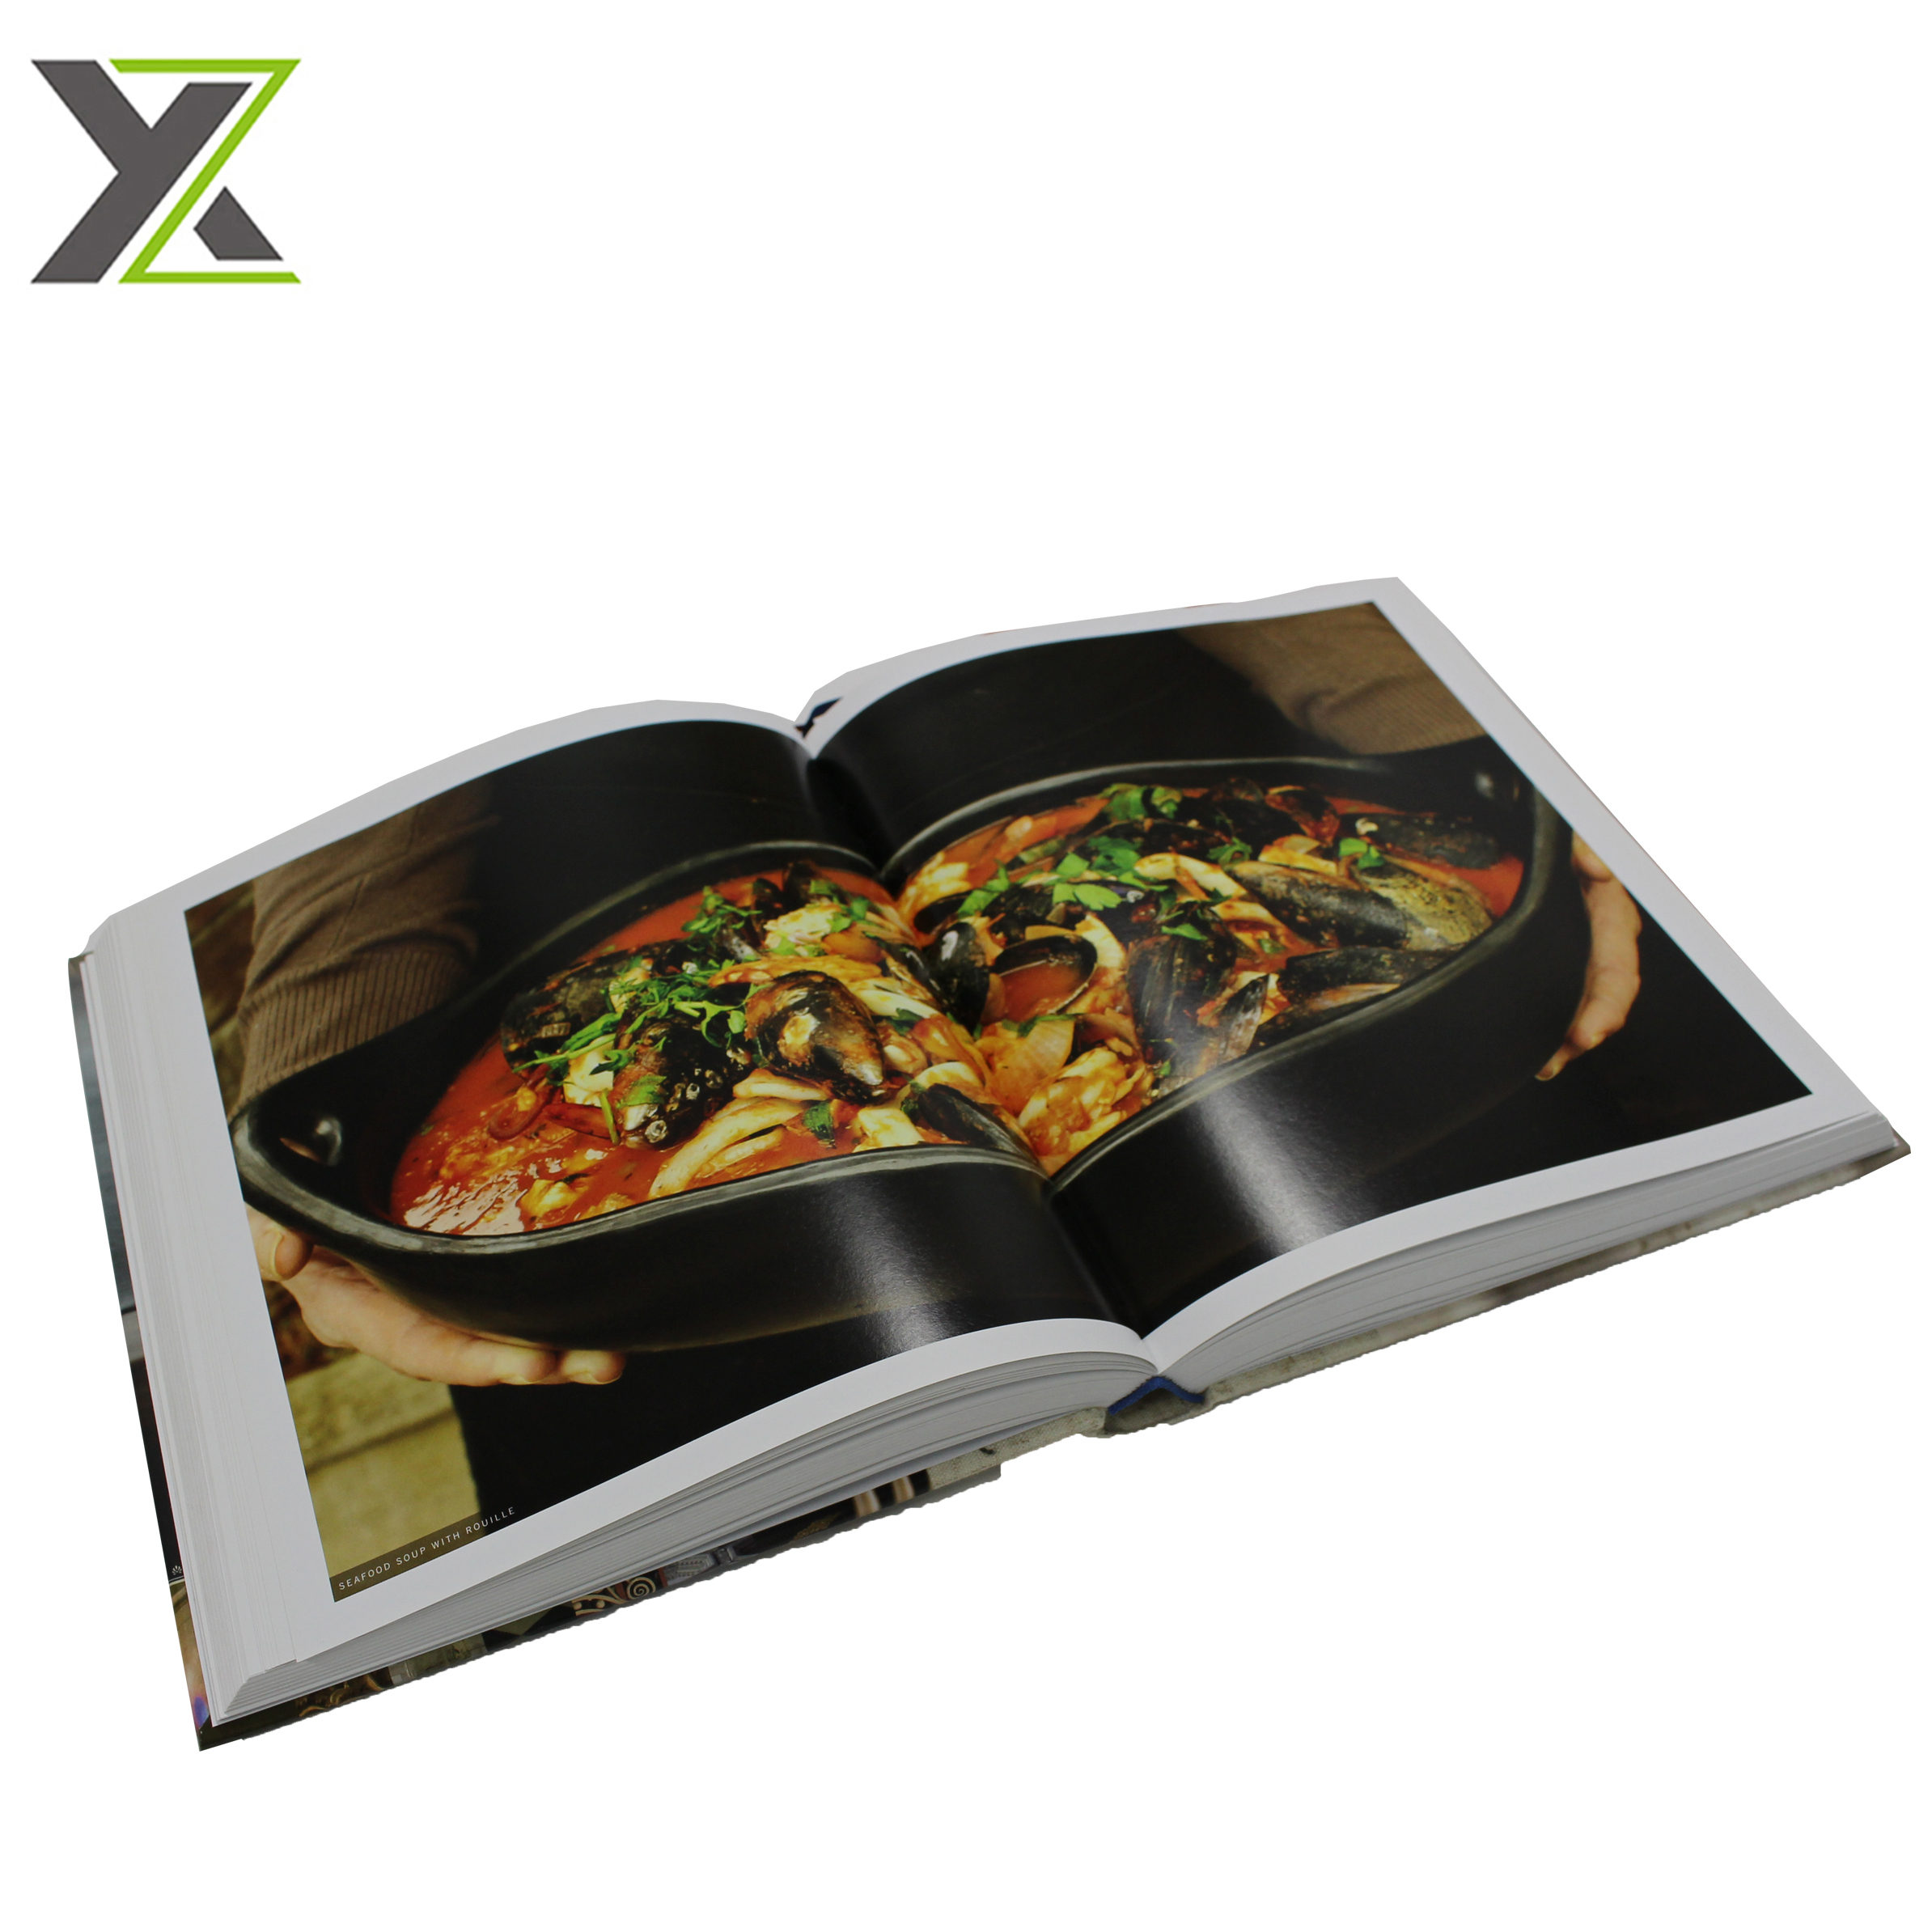 Custom silver foil case bound thick books hardcover gourmet magazine